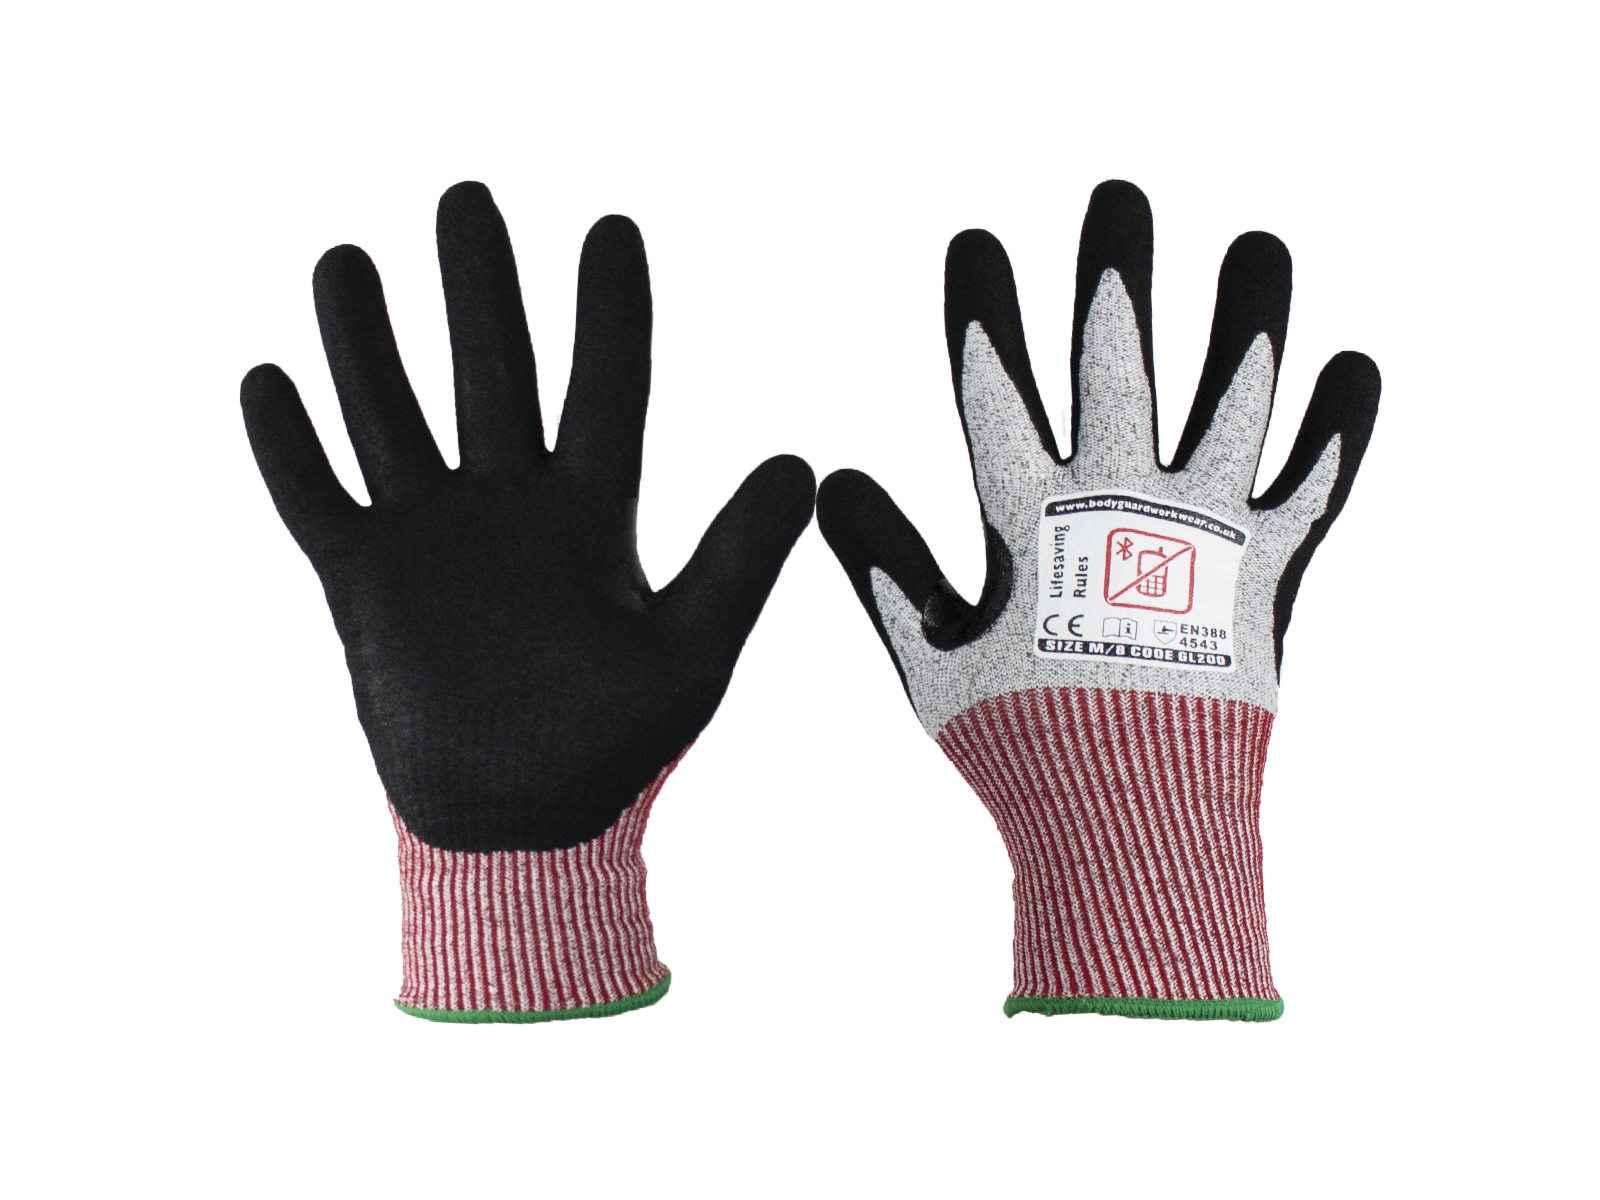 Samurai Protection Cut 5 Safety Gloves w/ excellent grip in wet, dry and oily application -2